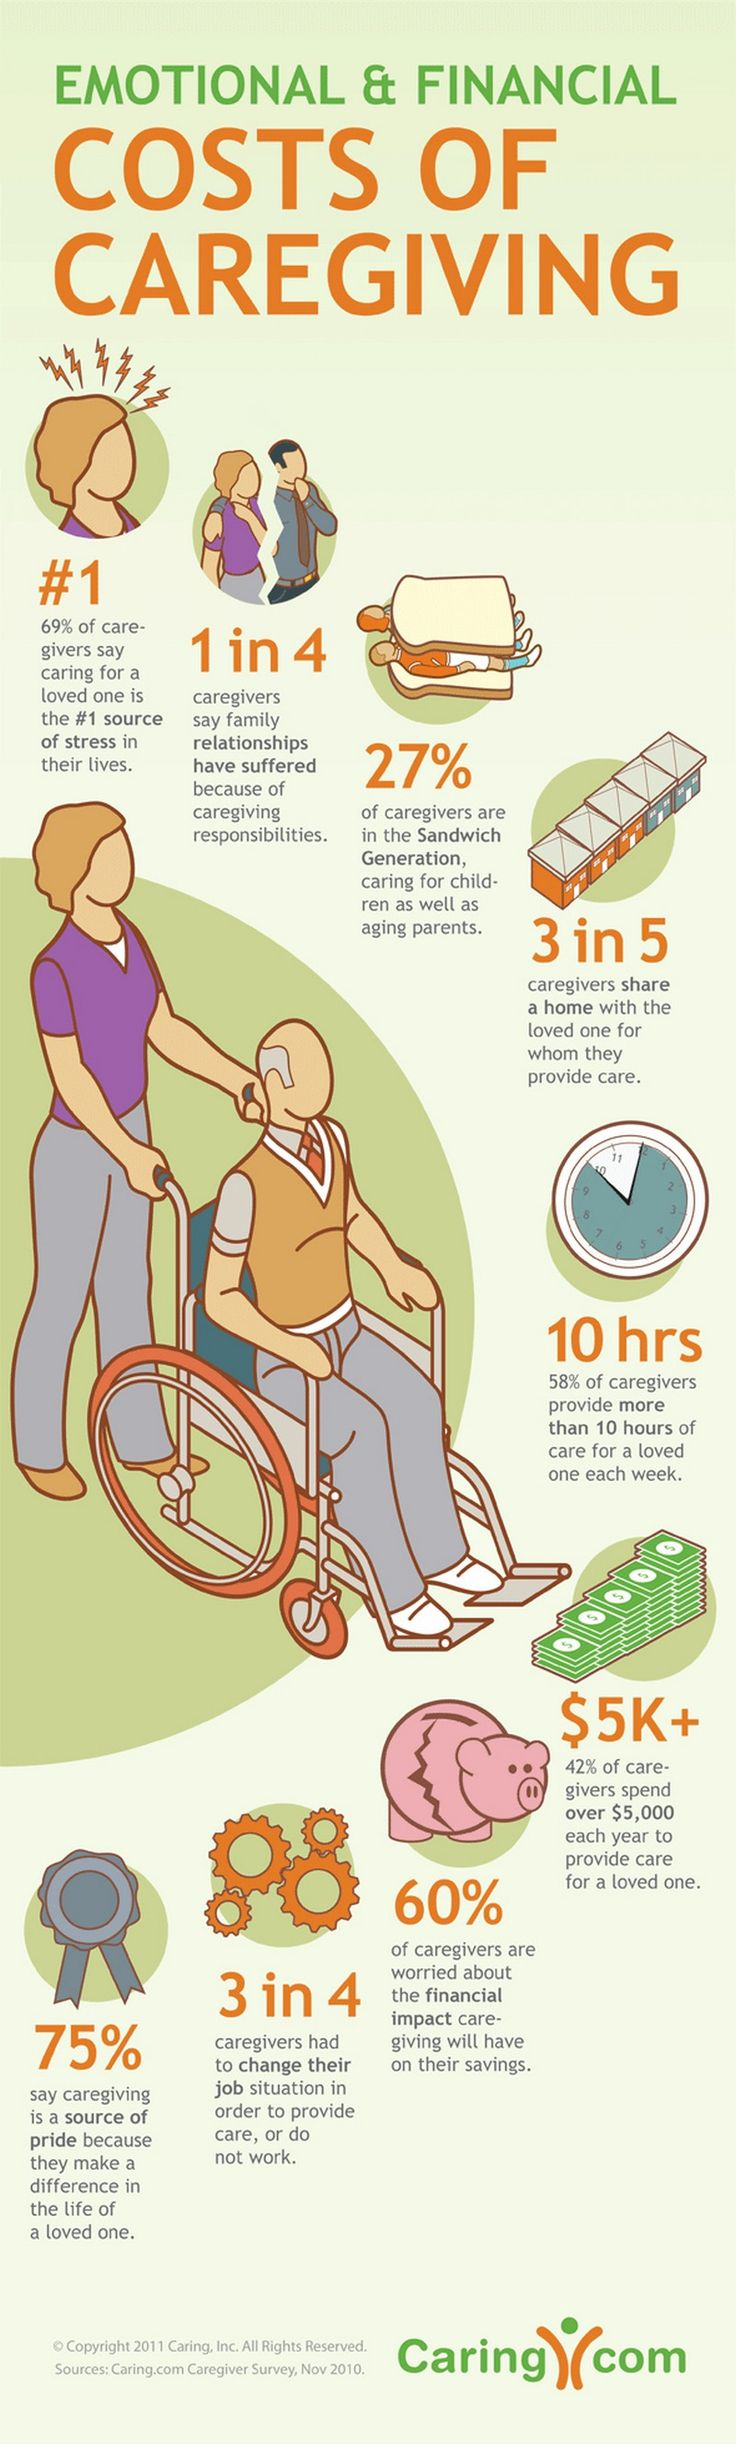 Alzheimer's Disease by the Numbers